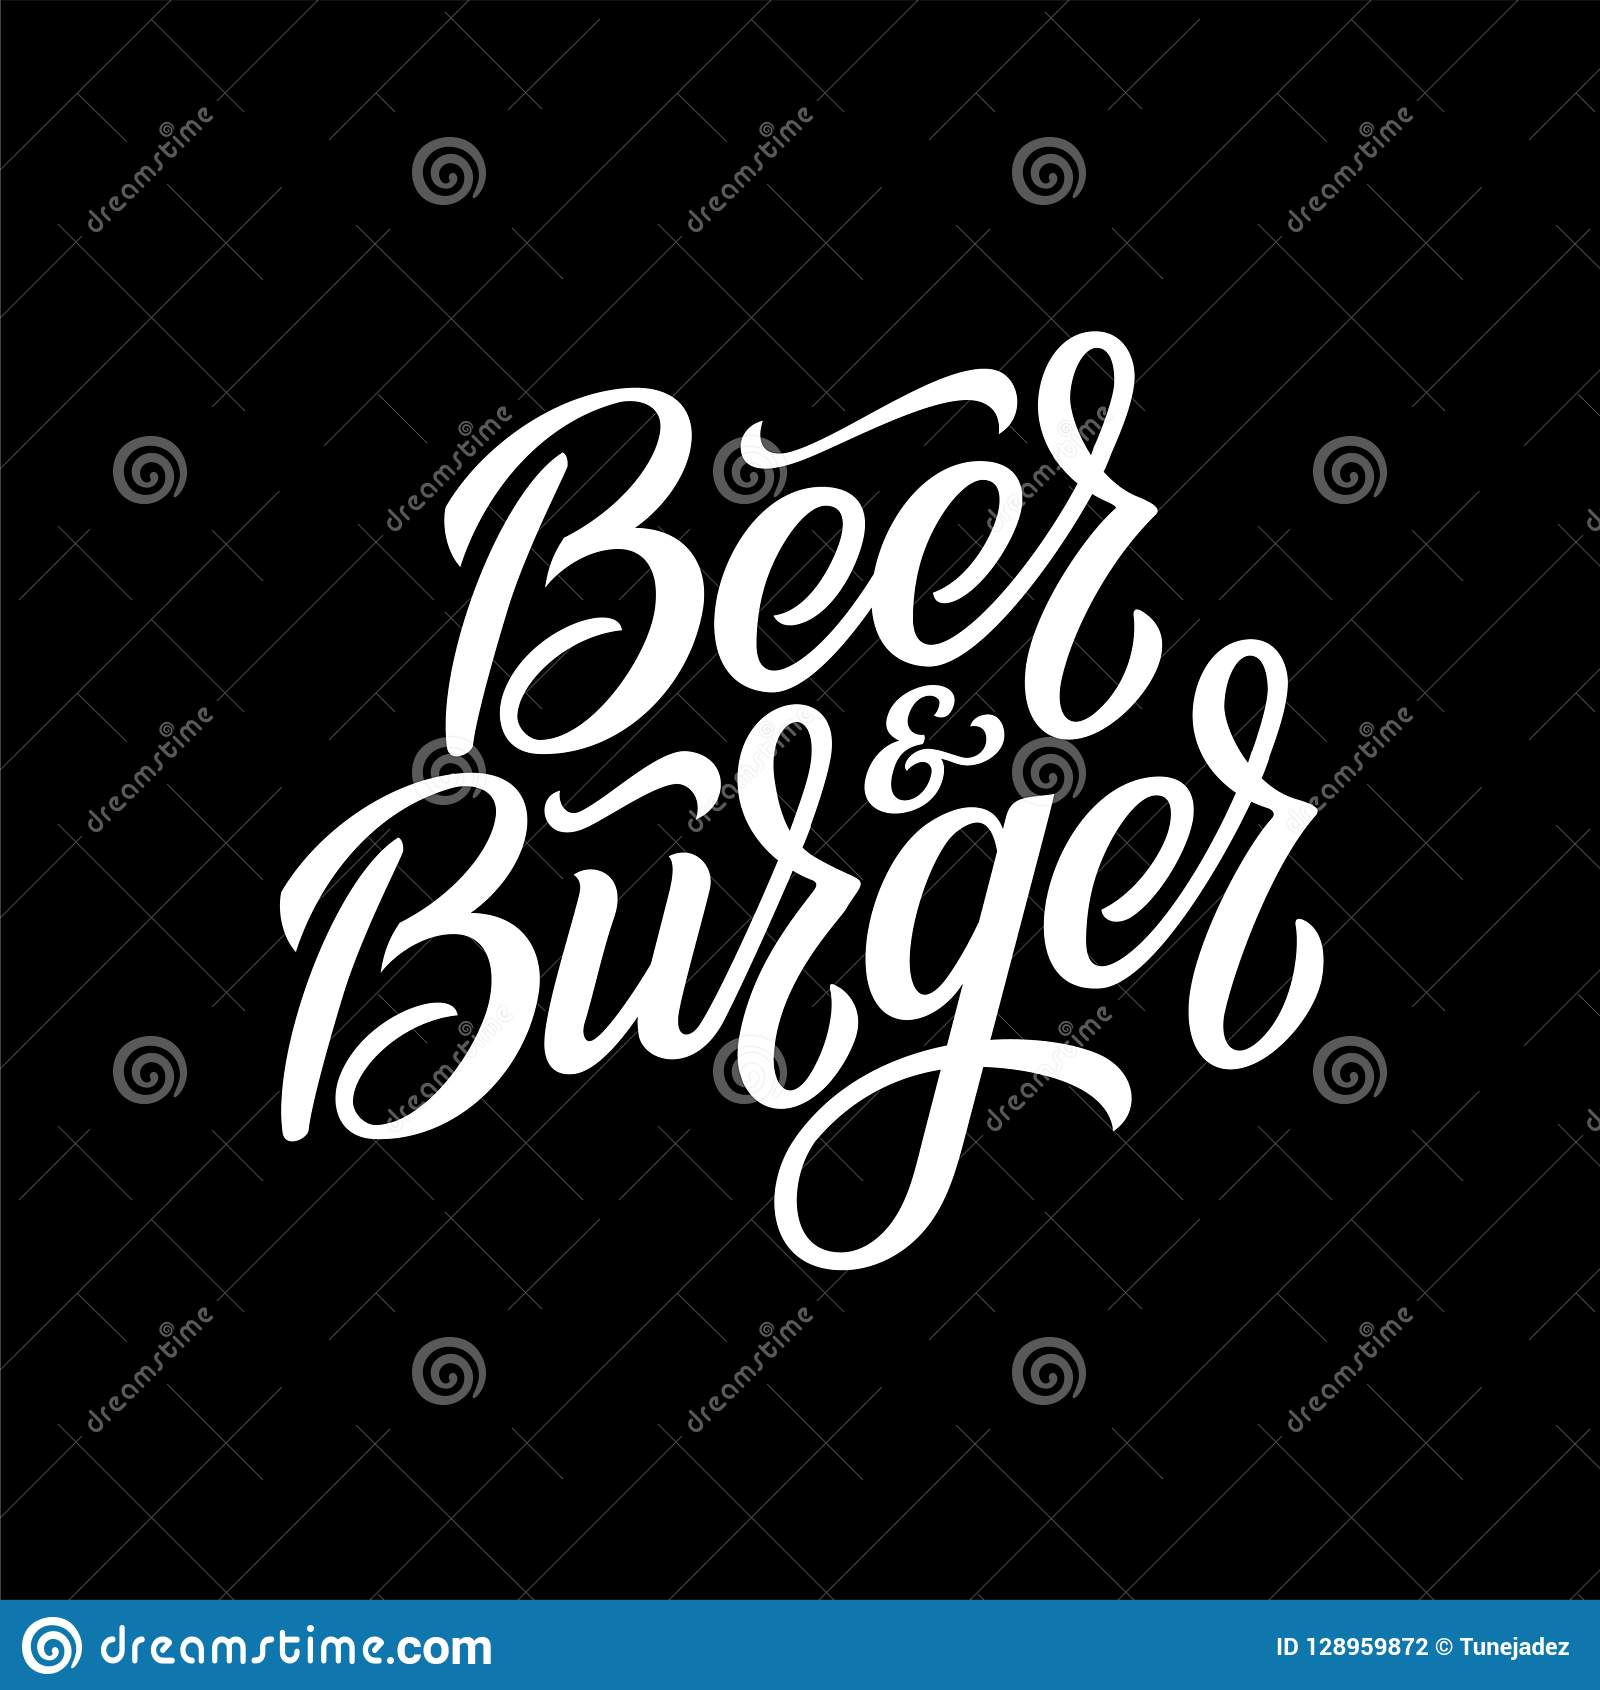 Beer And Burger Pub Emblem Vector Illustration Stock Vector Illustration Of Logo Lettering 128959872